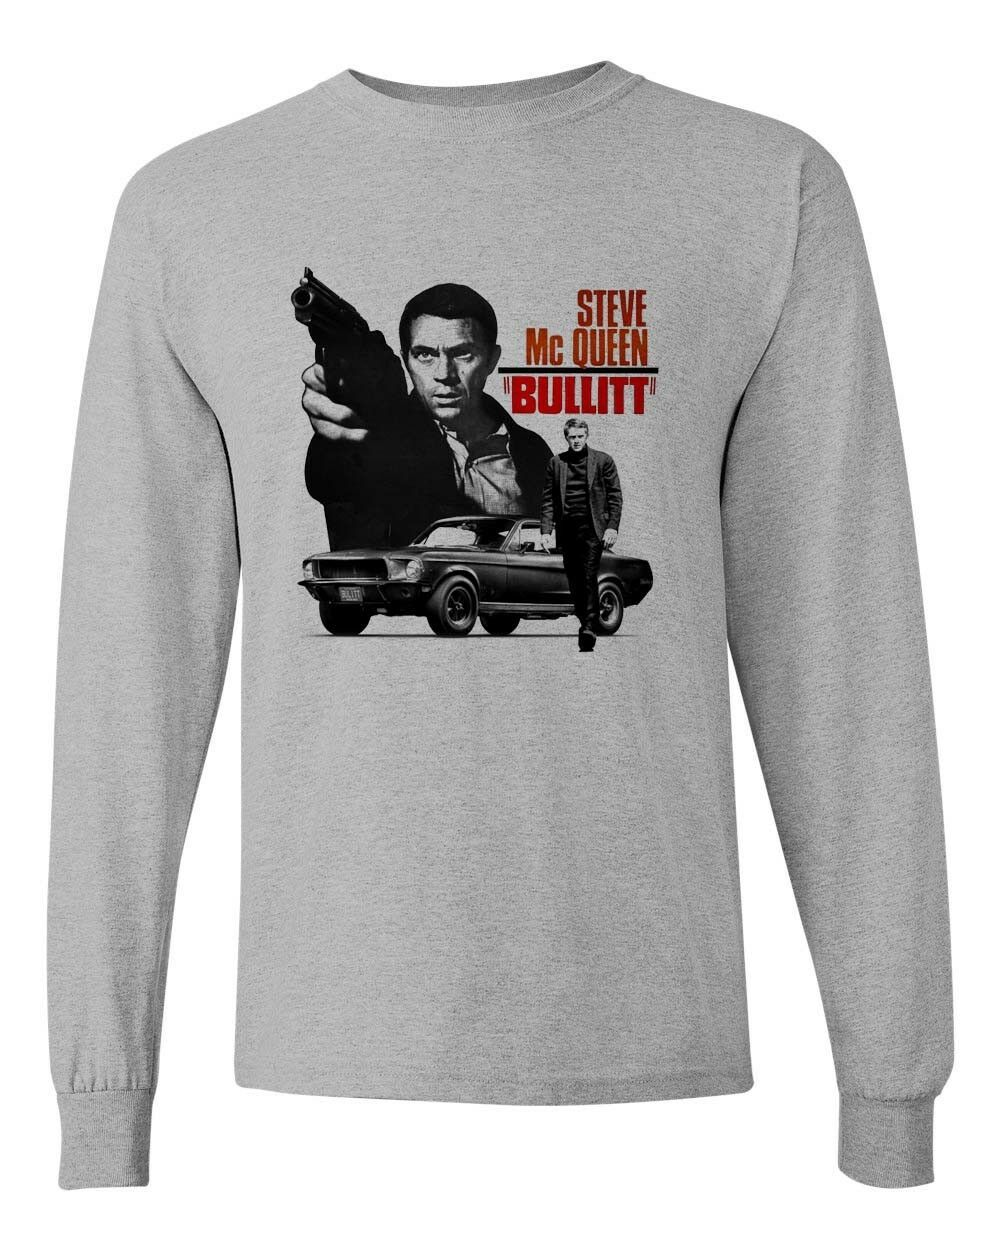 Bullitt Steve McQueen Long Sleeve T-shirt 1960s car movie ford Mustang gray